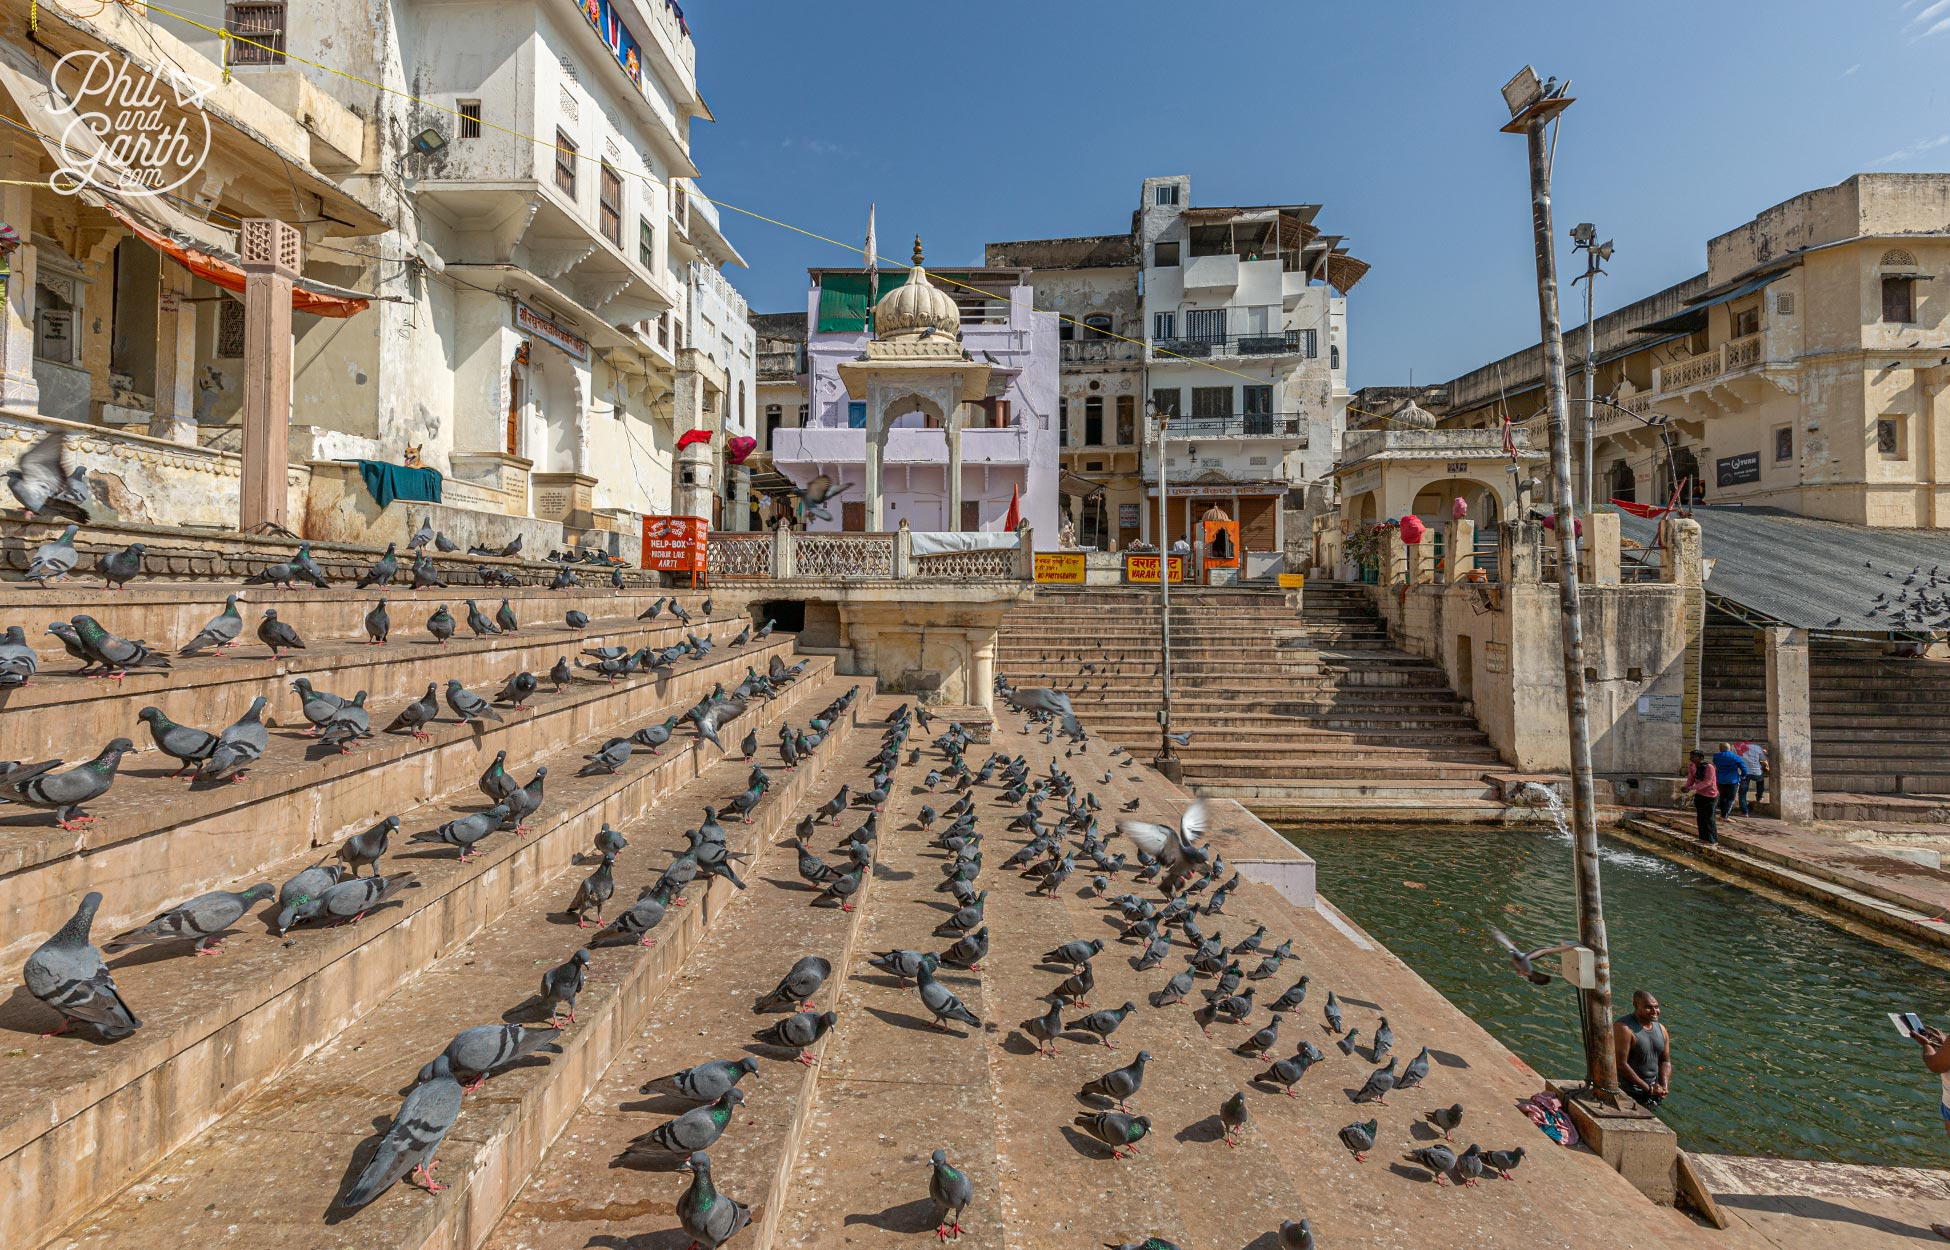 Just one of the many ghats (steps) in Pushkar